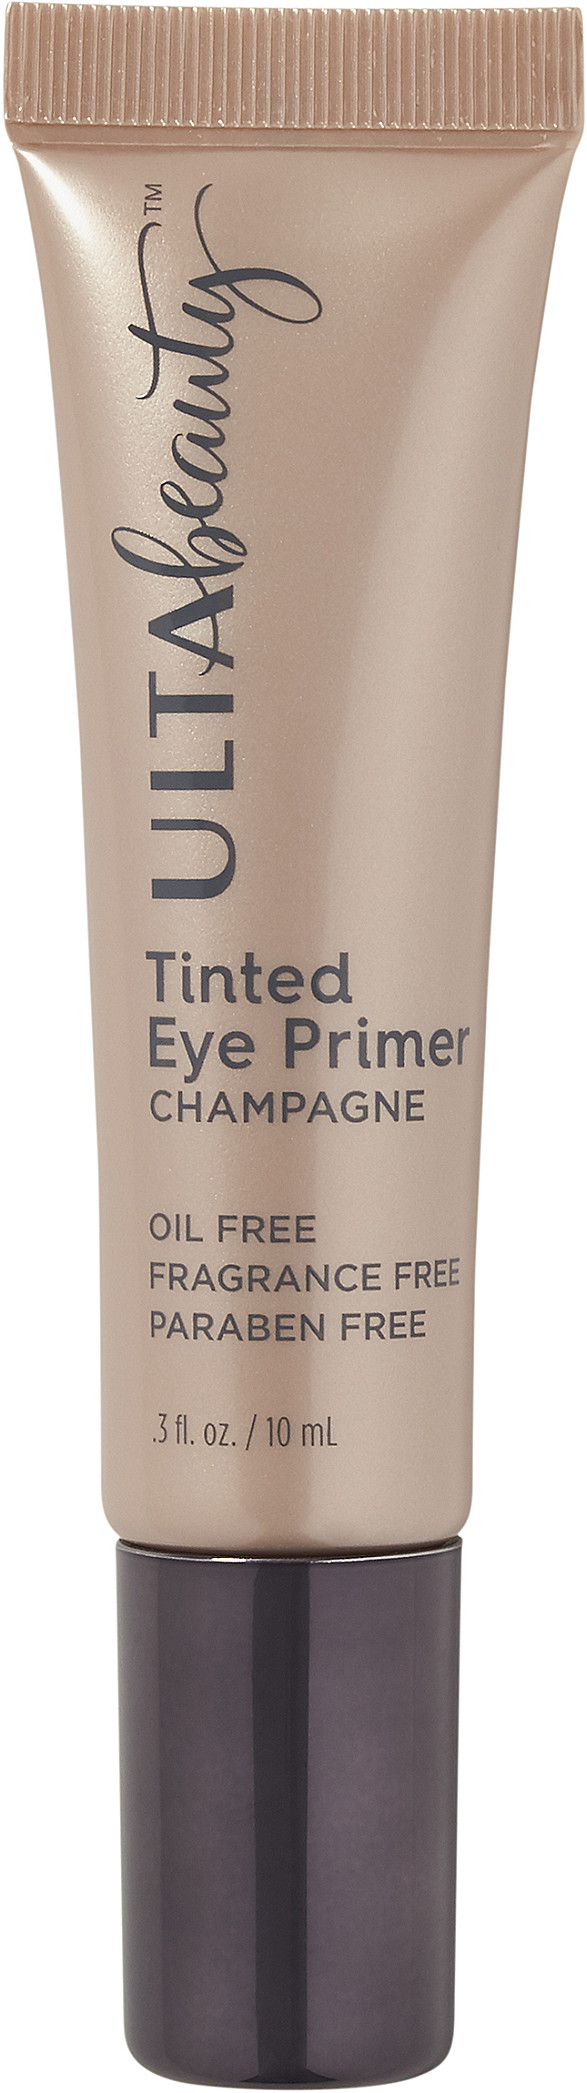 Tinted Eye Primer by ULTA Beauty #5